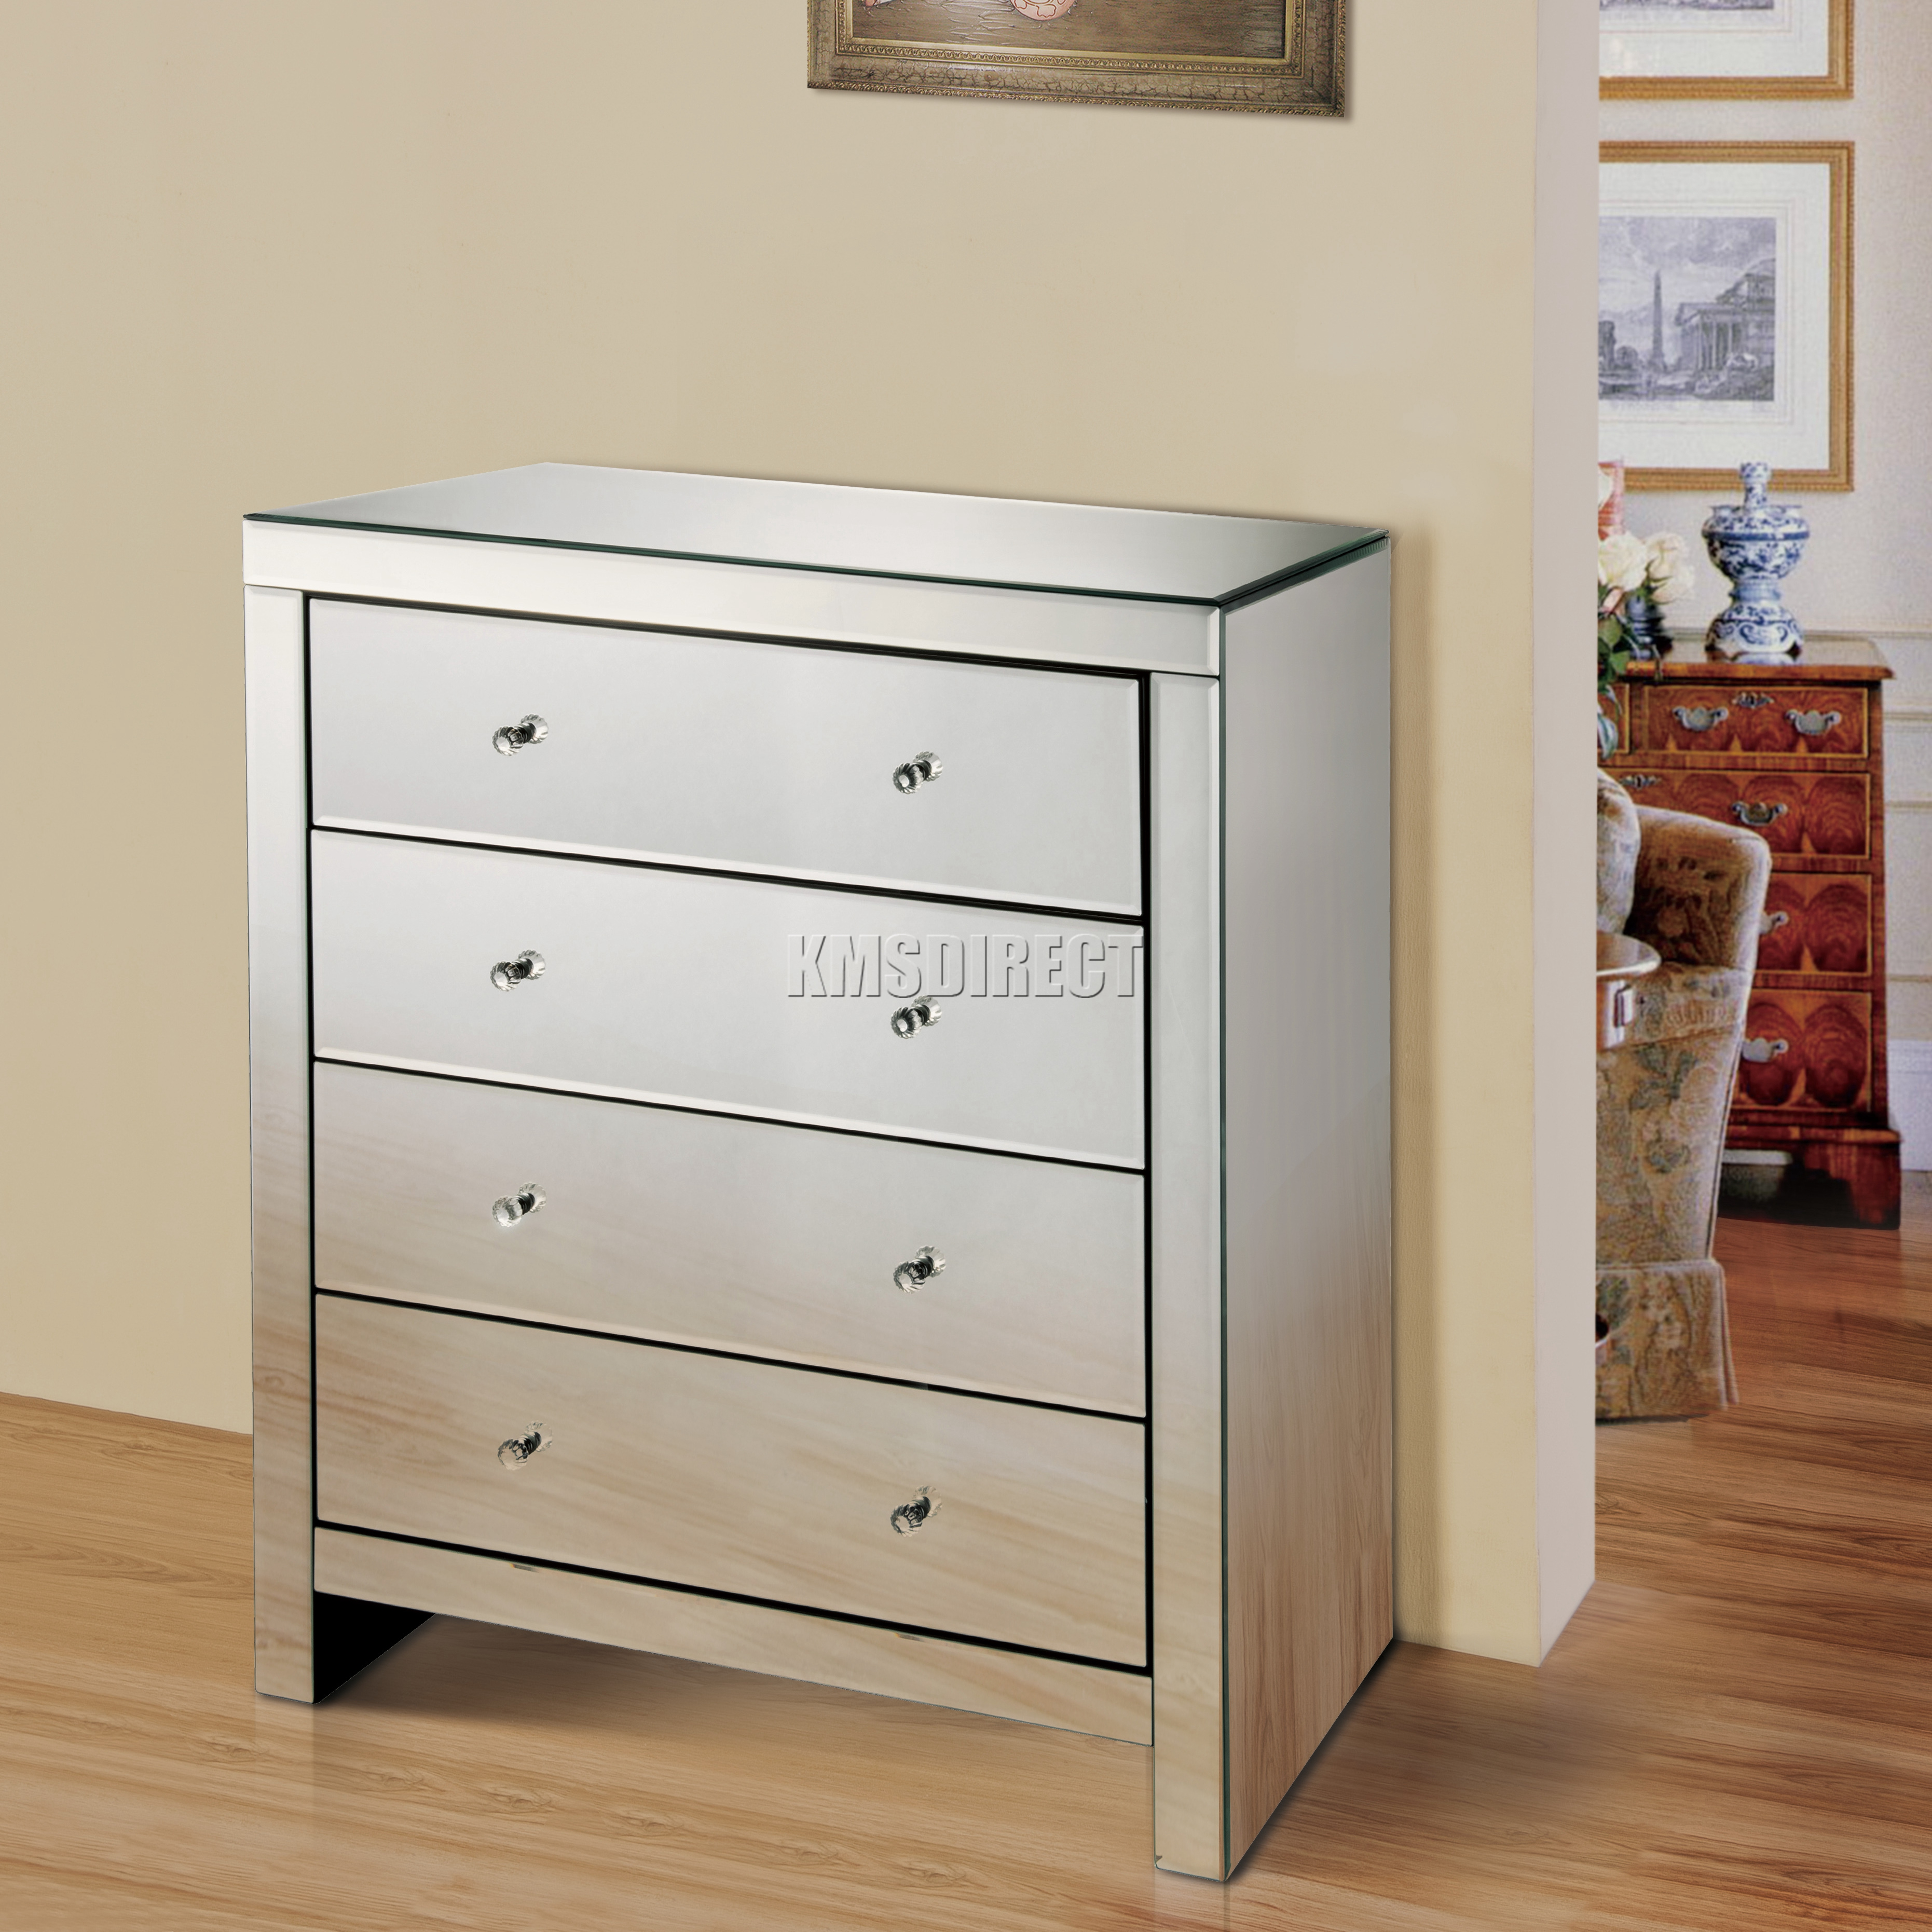 Sentinel SPARE REPAIR FoxHunter Mirrored Furniture Glass 4 Drawer Chest  Cabinet Table